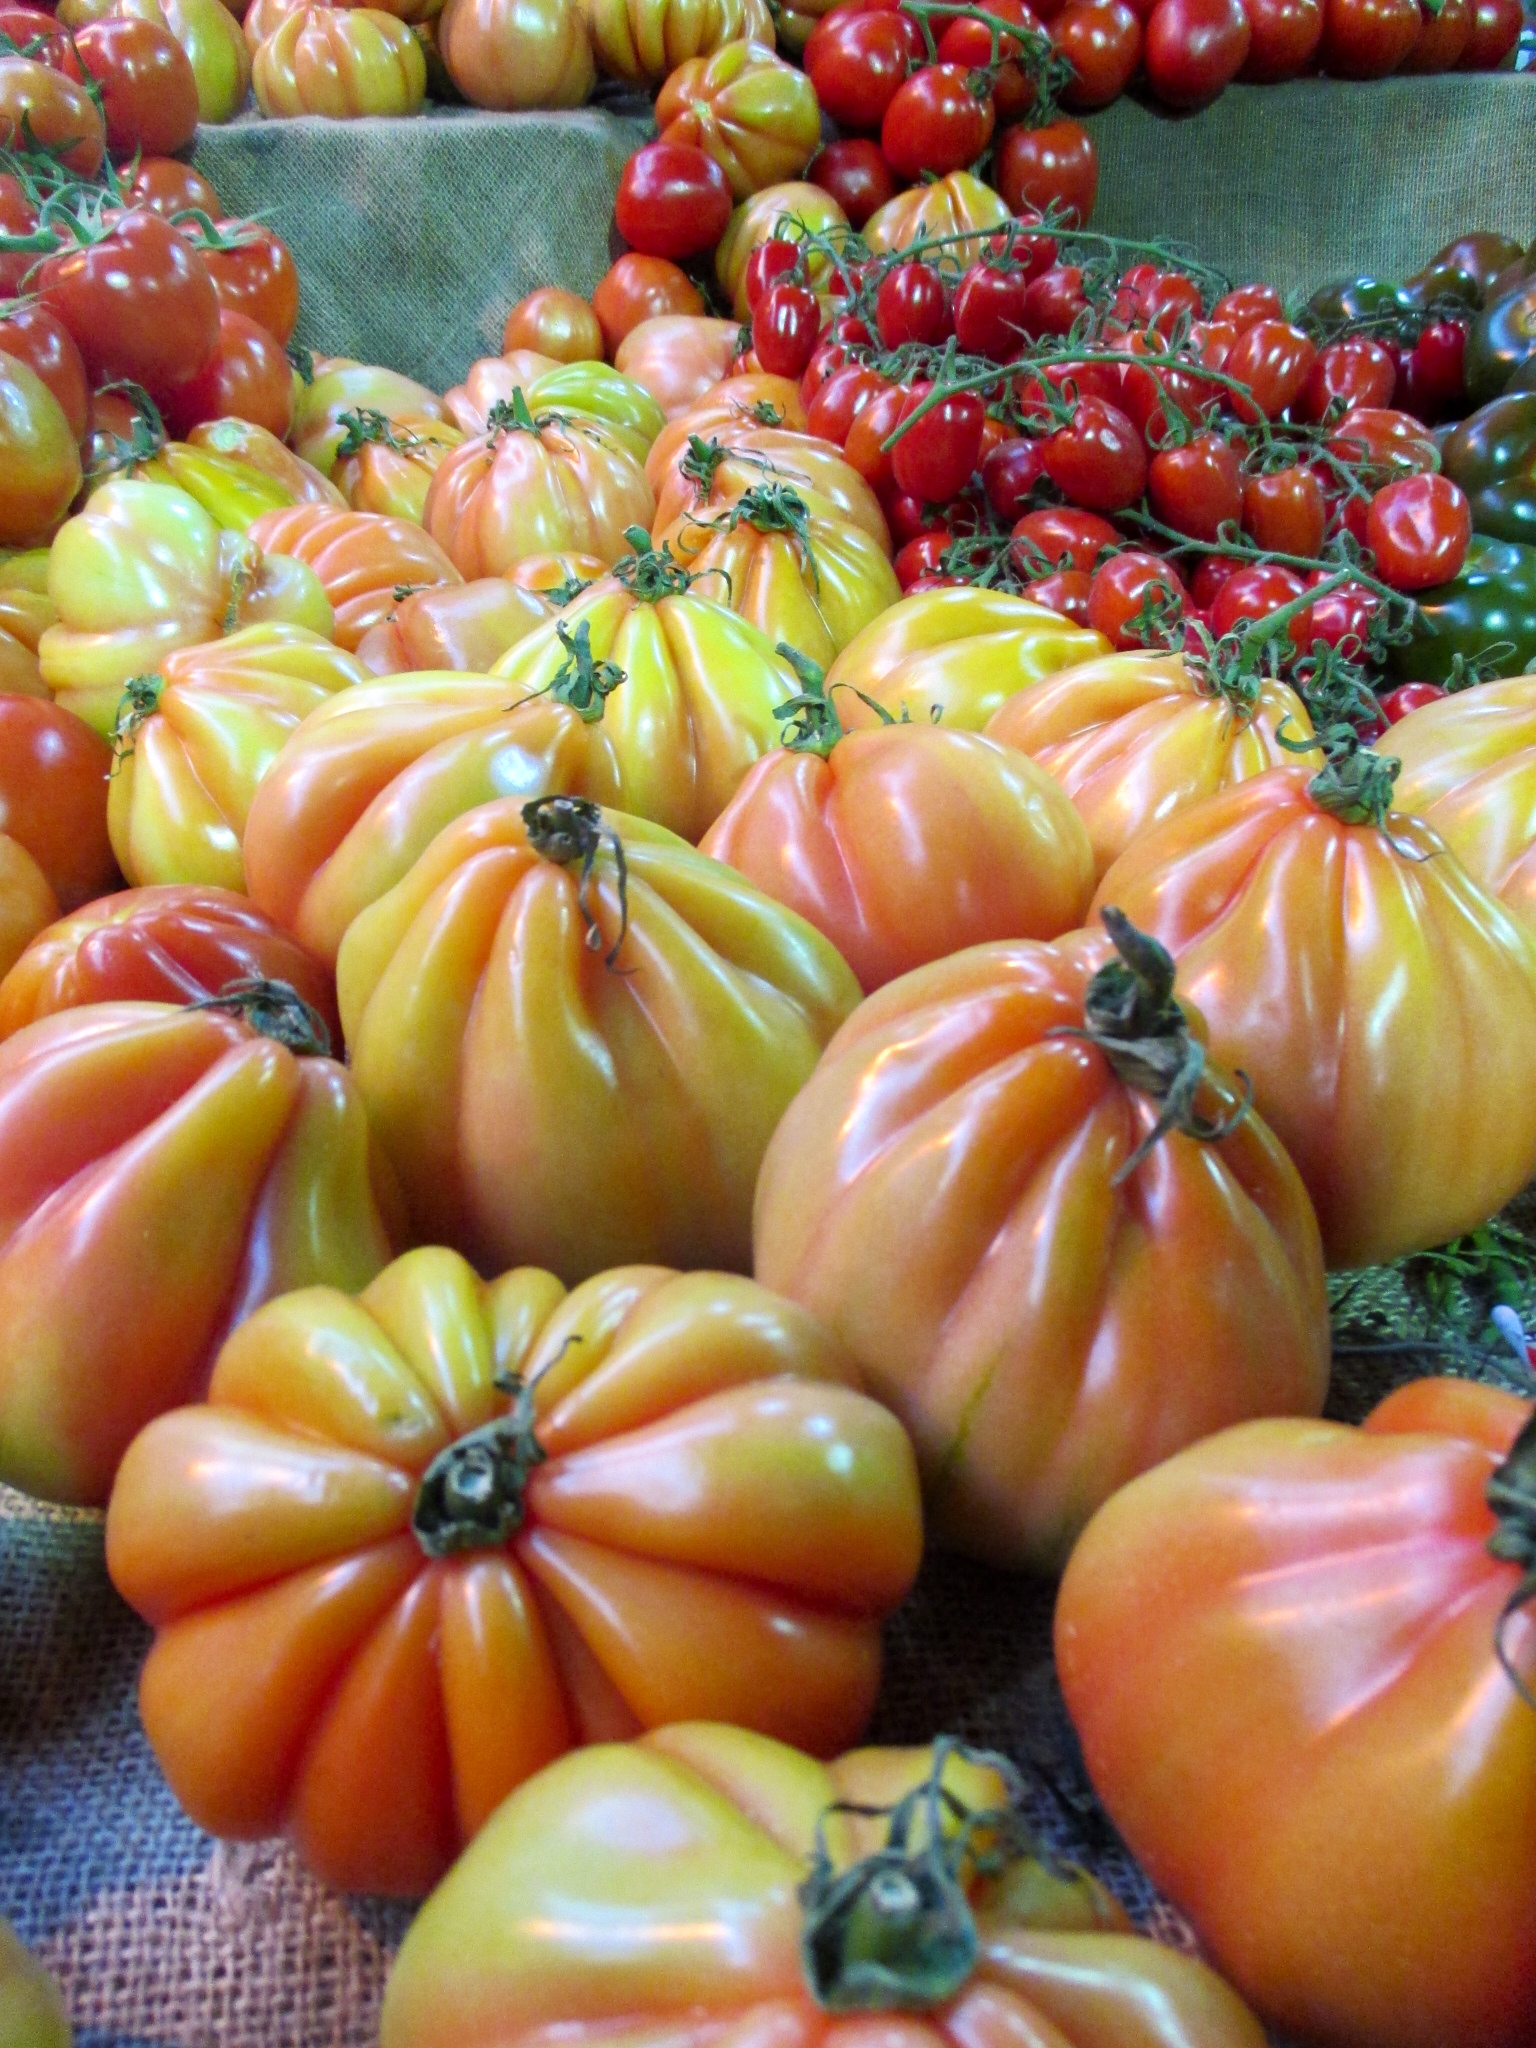 The breathtaking heirloom tomato display at London's Borough Market